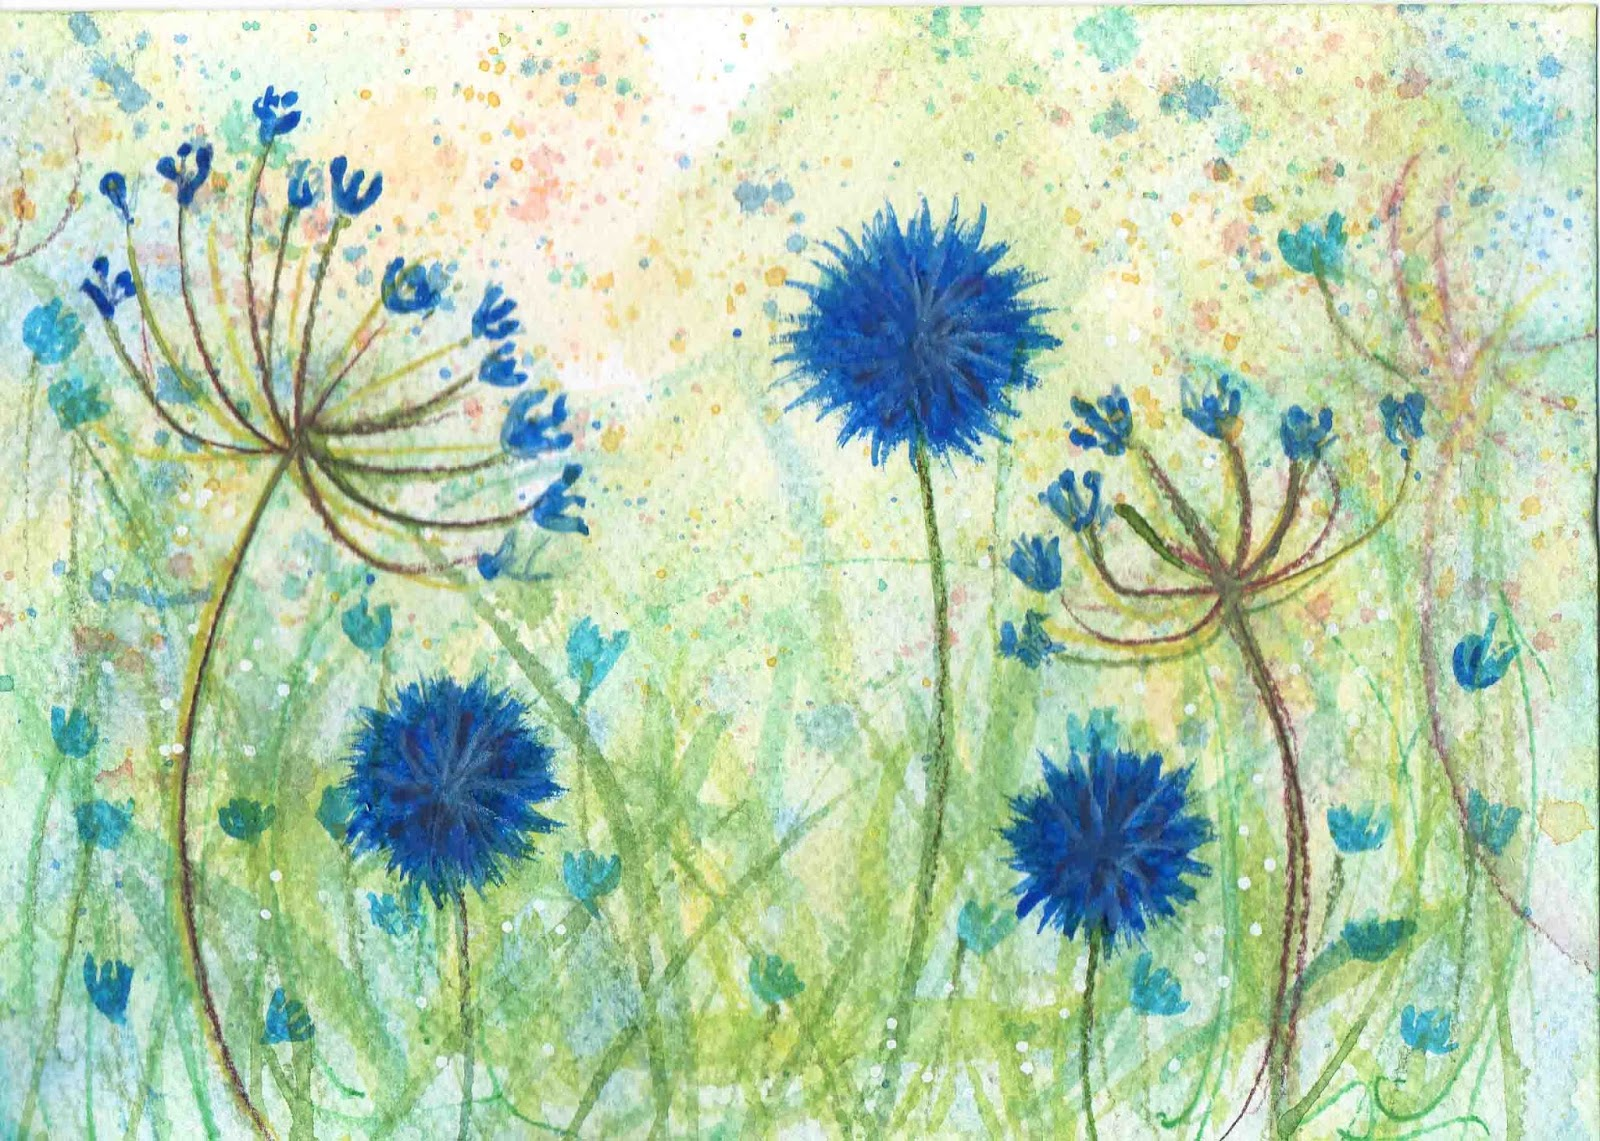 Posted by claudia hemmings at 23 57 no comments for How to paint simple watercolor flowers